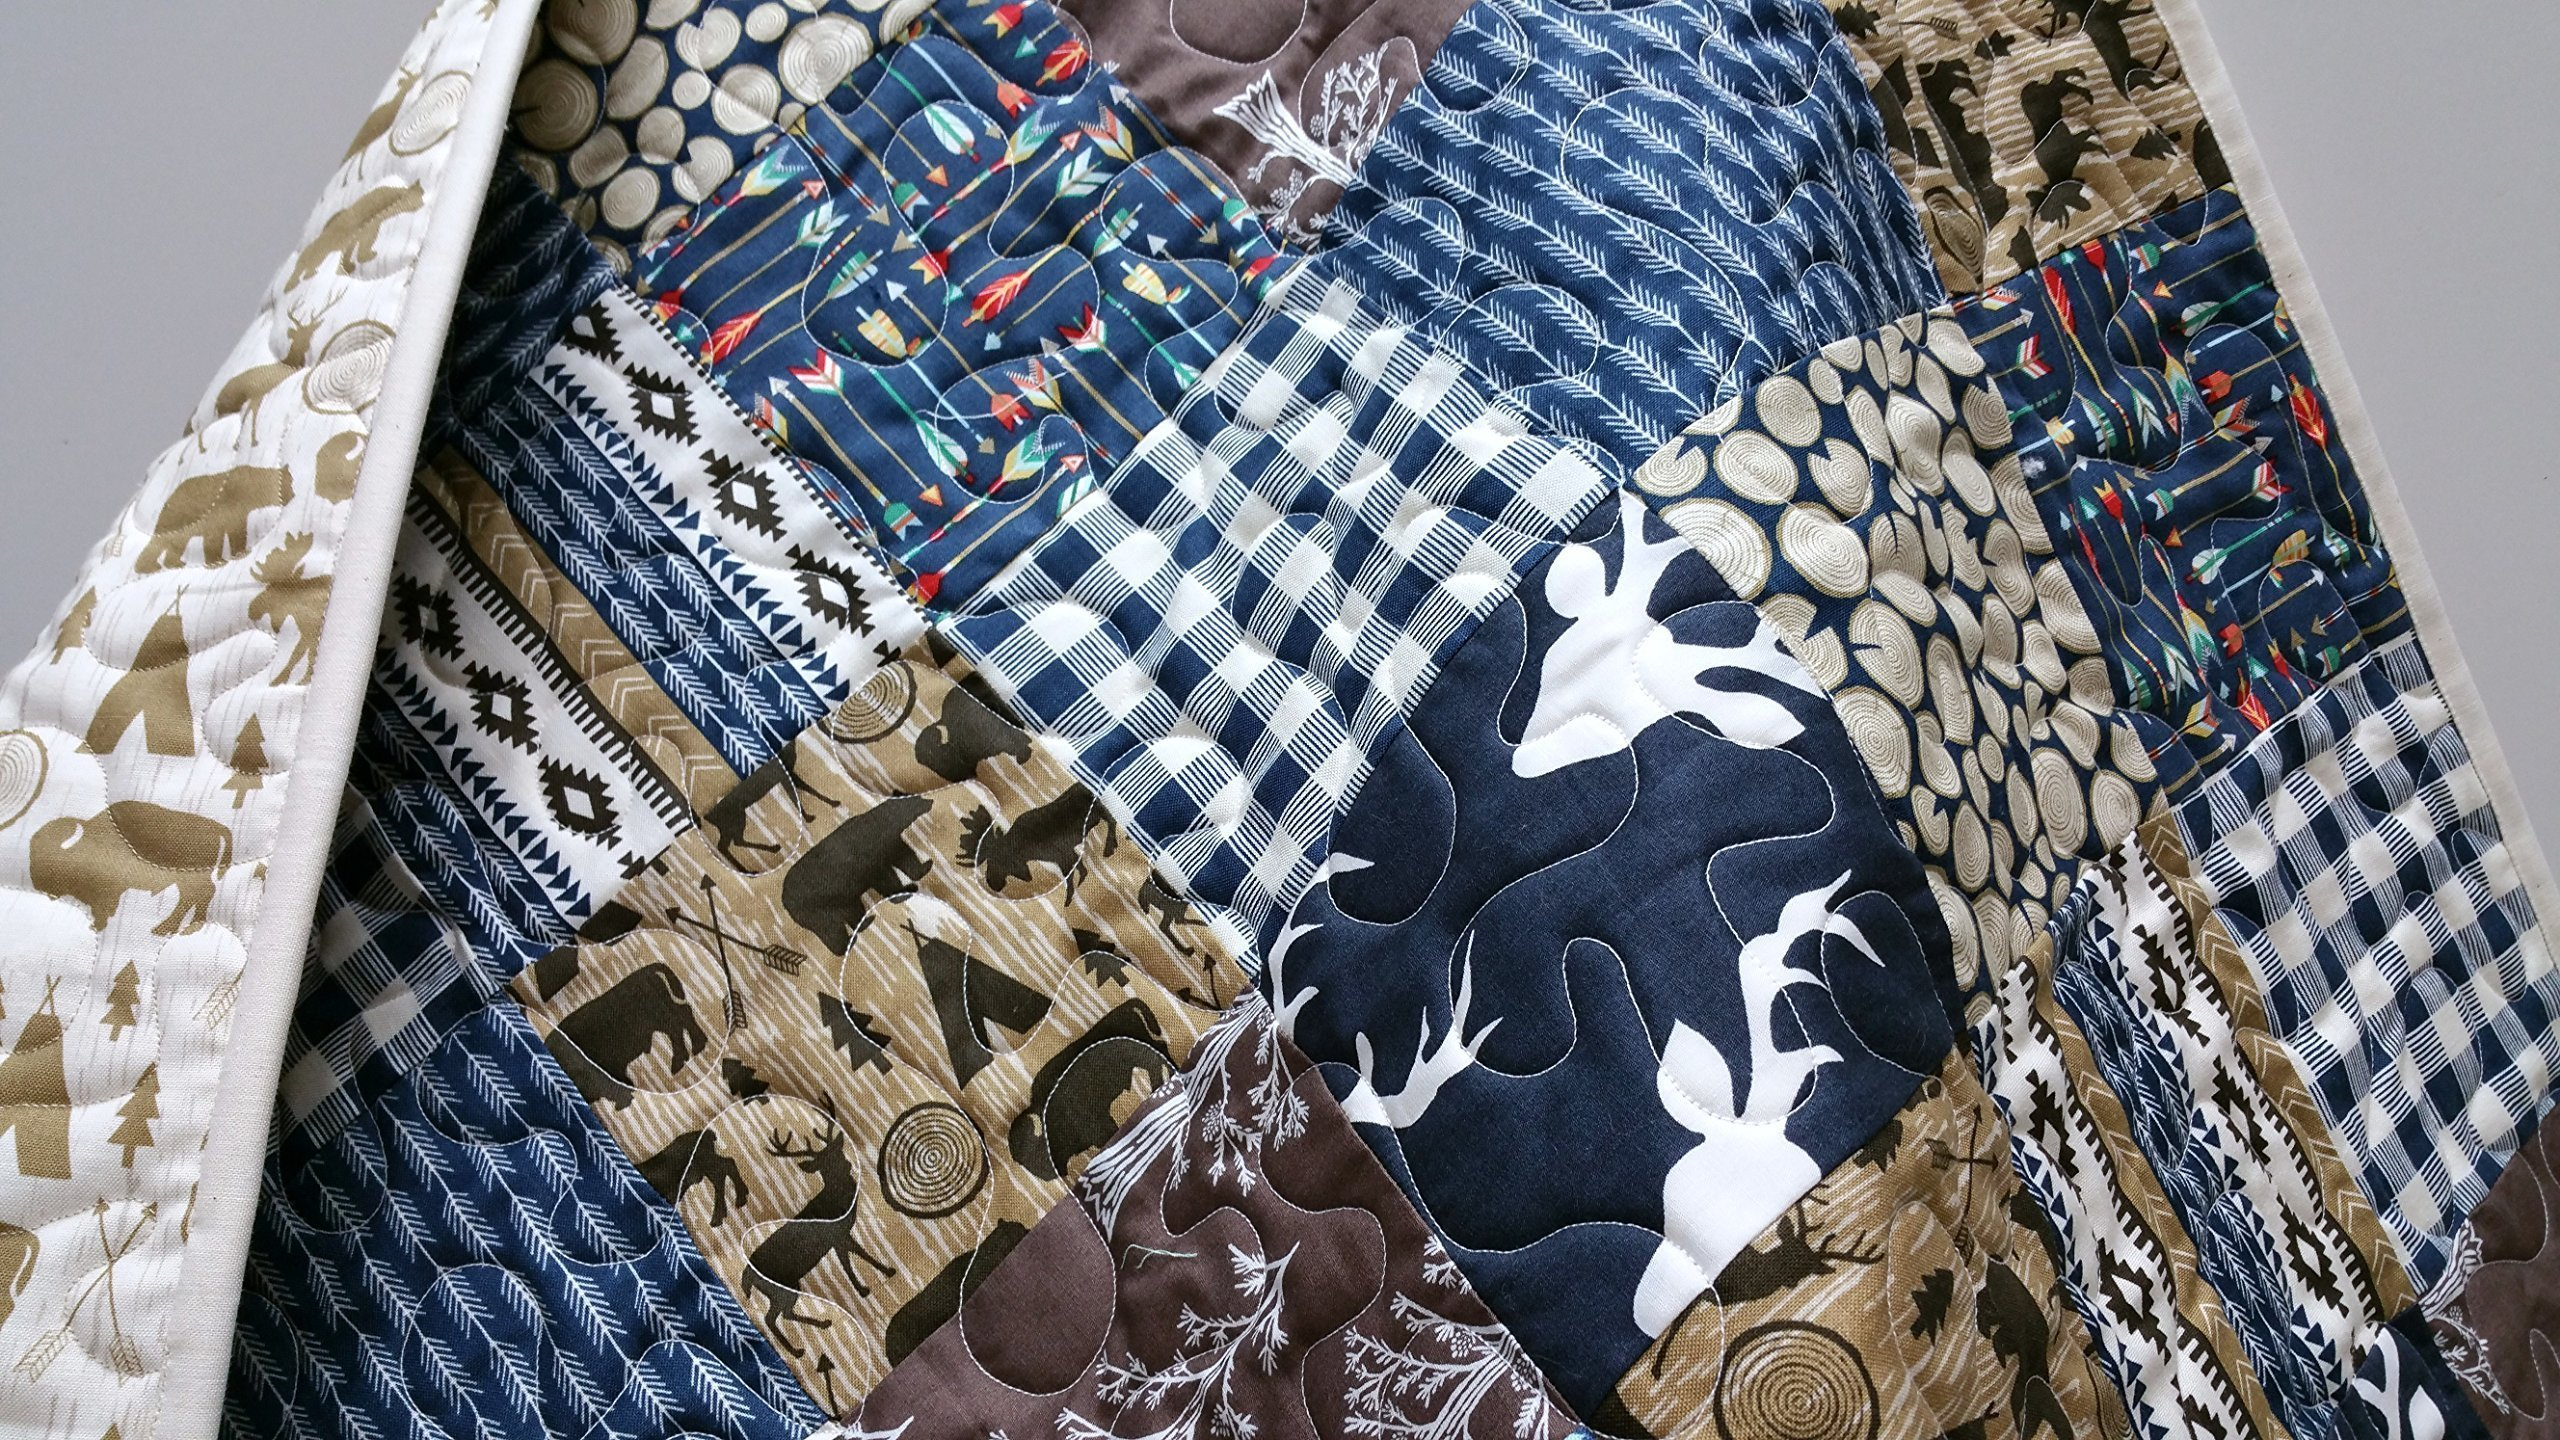 Rustic Baby Boy Quilt - Mix - Woodland, Lumberjack, Navajo, Tribal, Southwest, in Navy and Brown